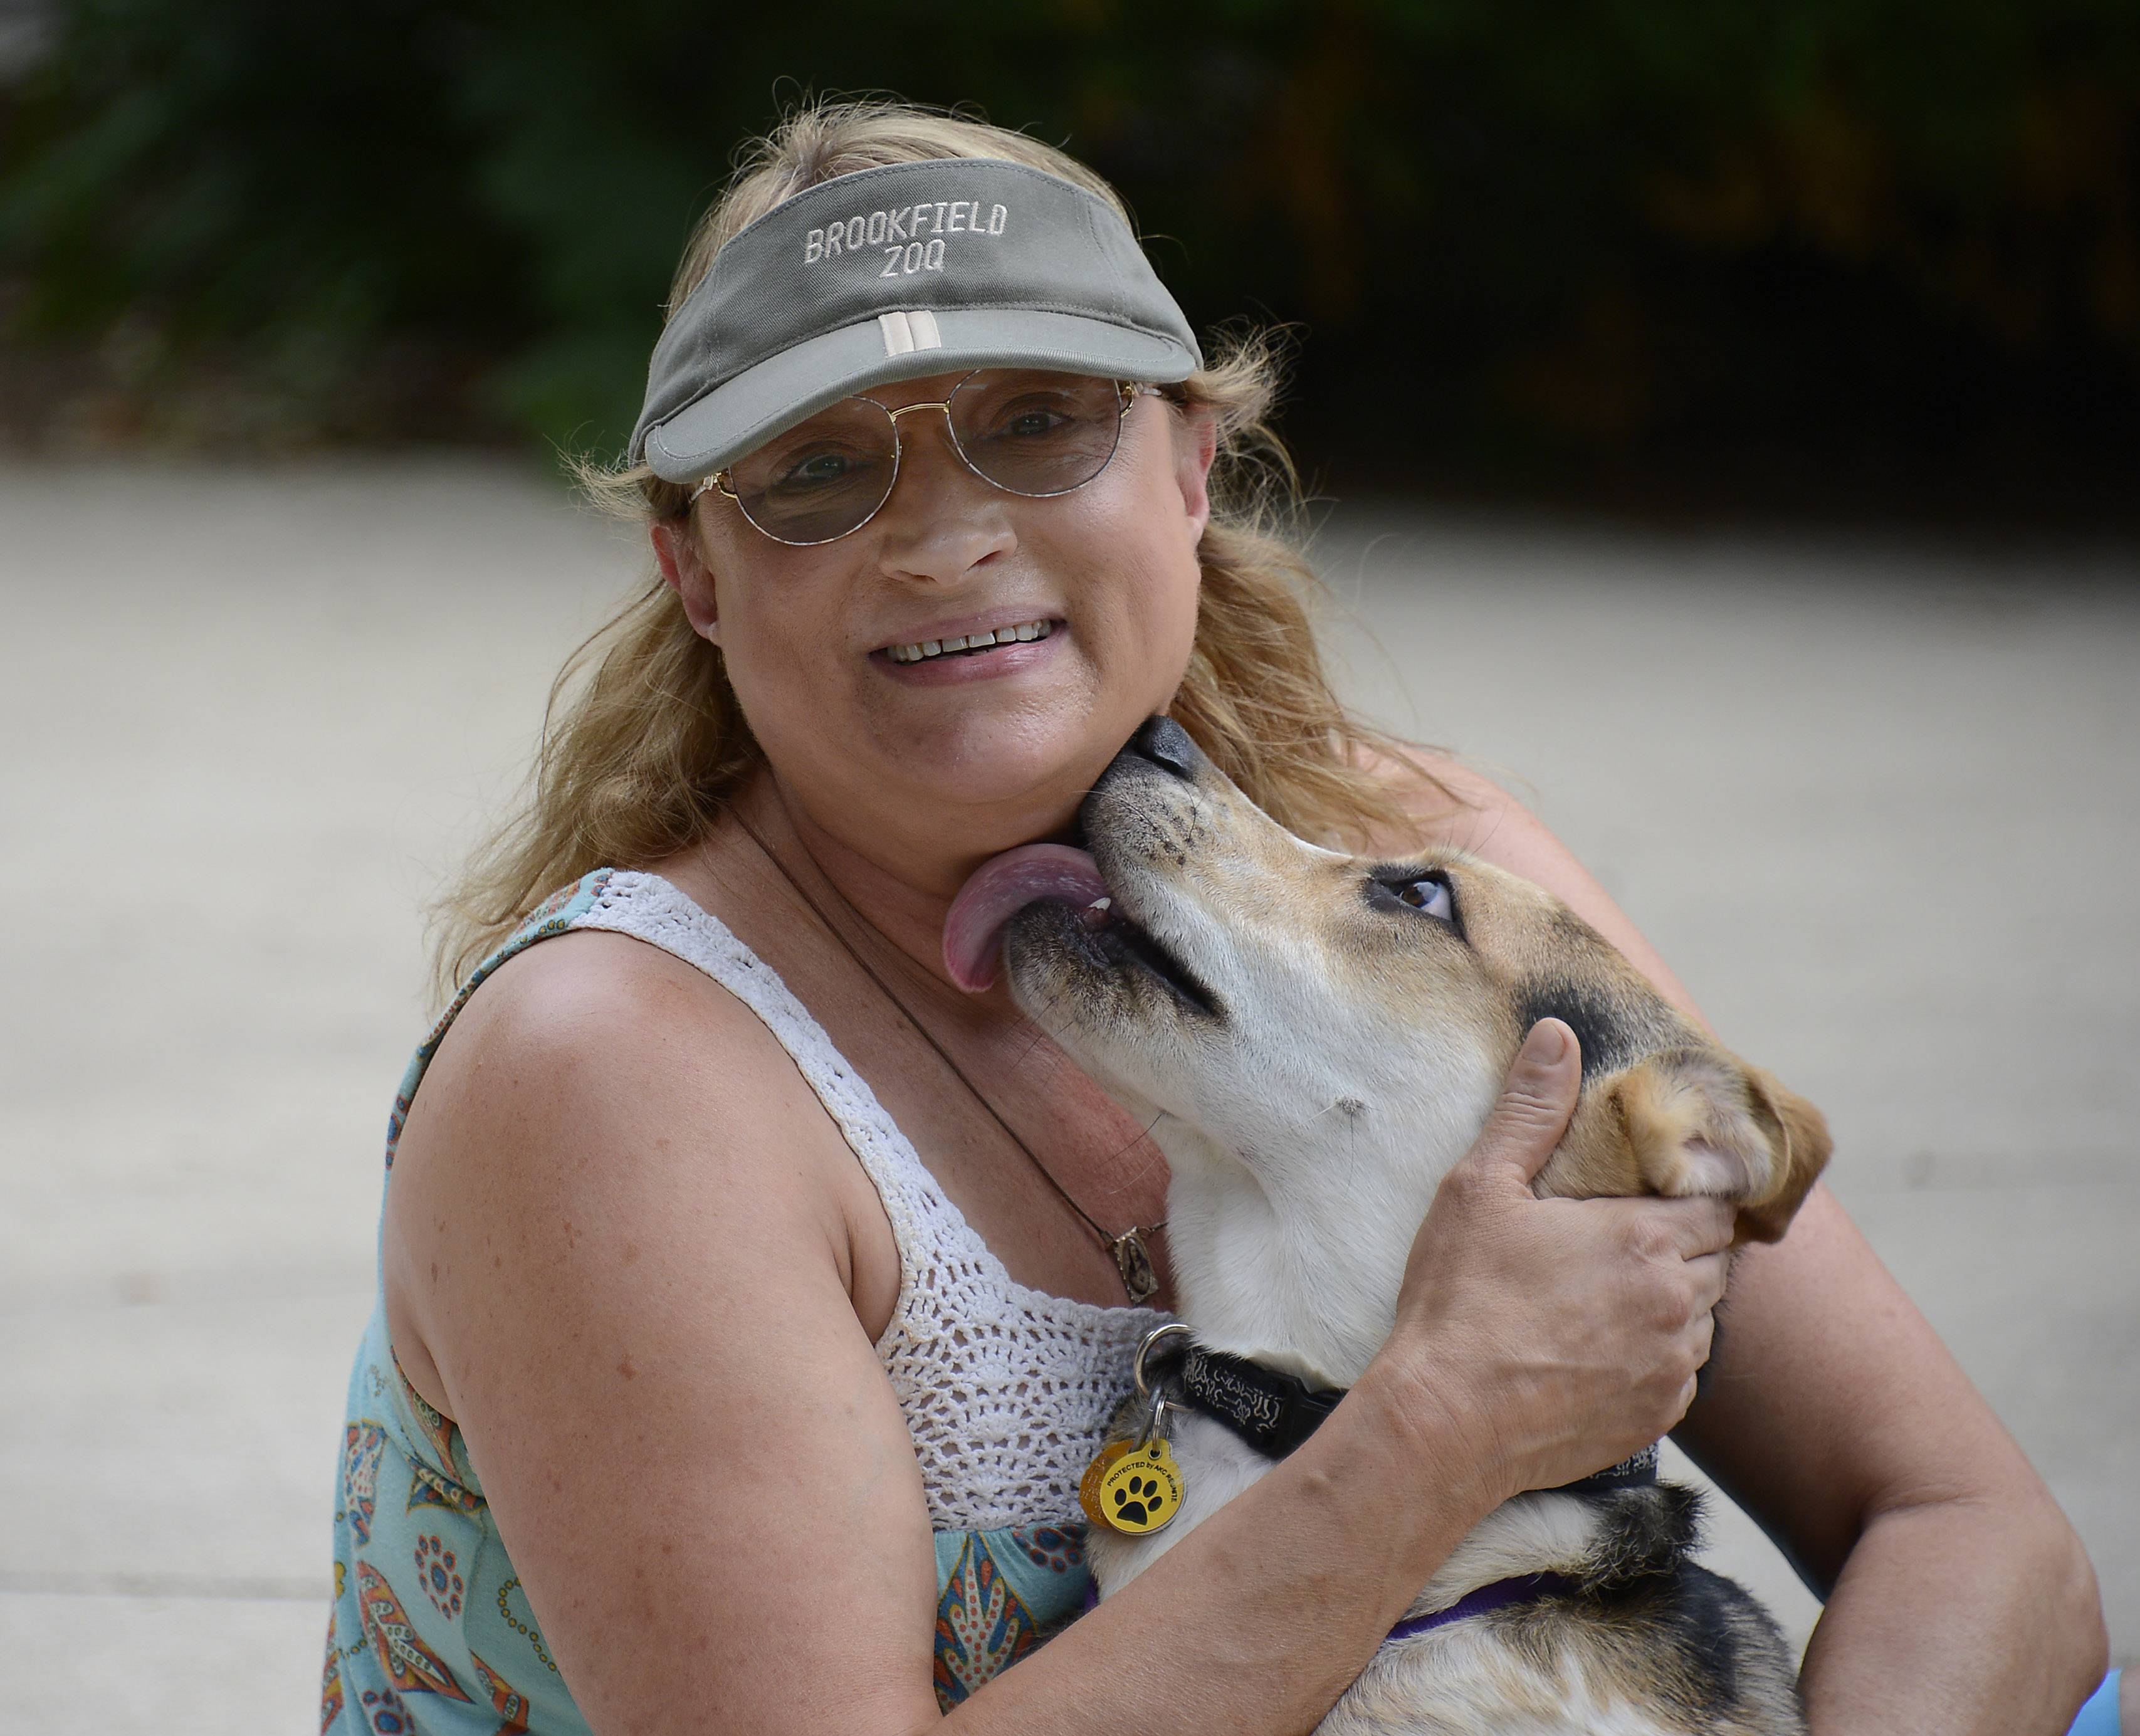 Wendi Cali and her dog Rango during play time in Arlington Heights. She saved Rango and Rango saved her after her other dog died.